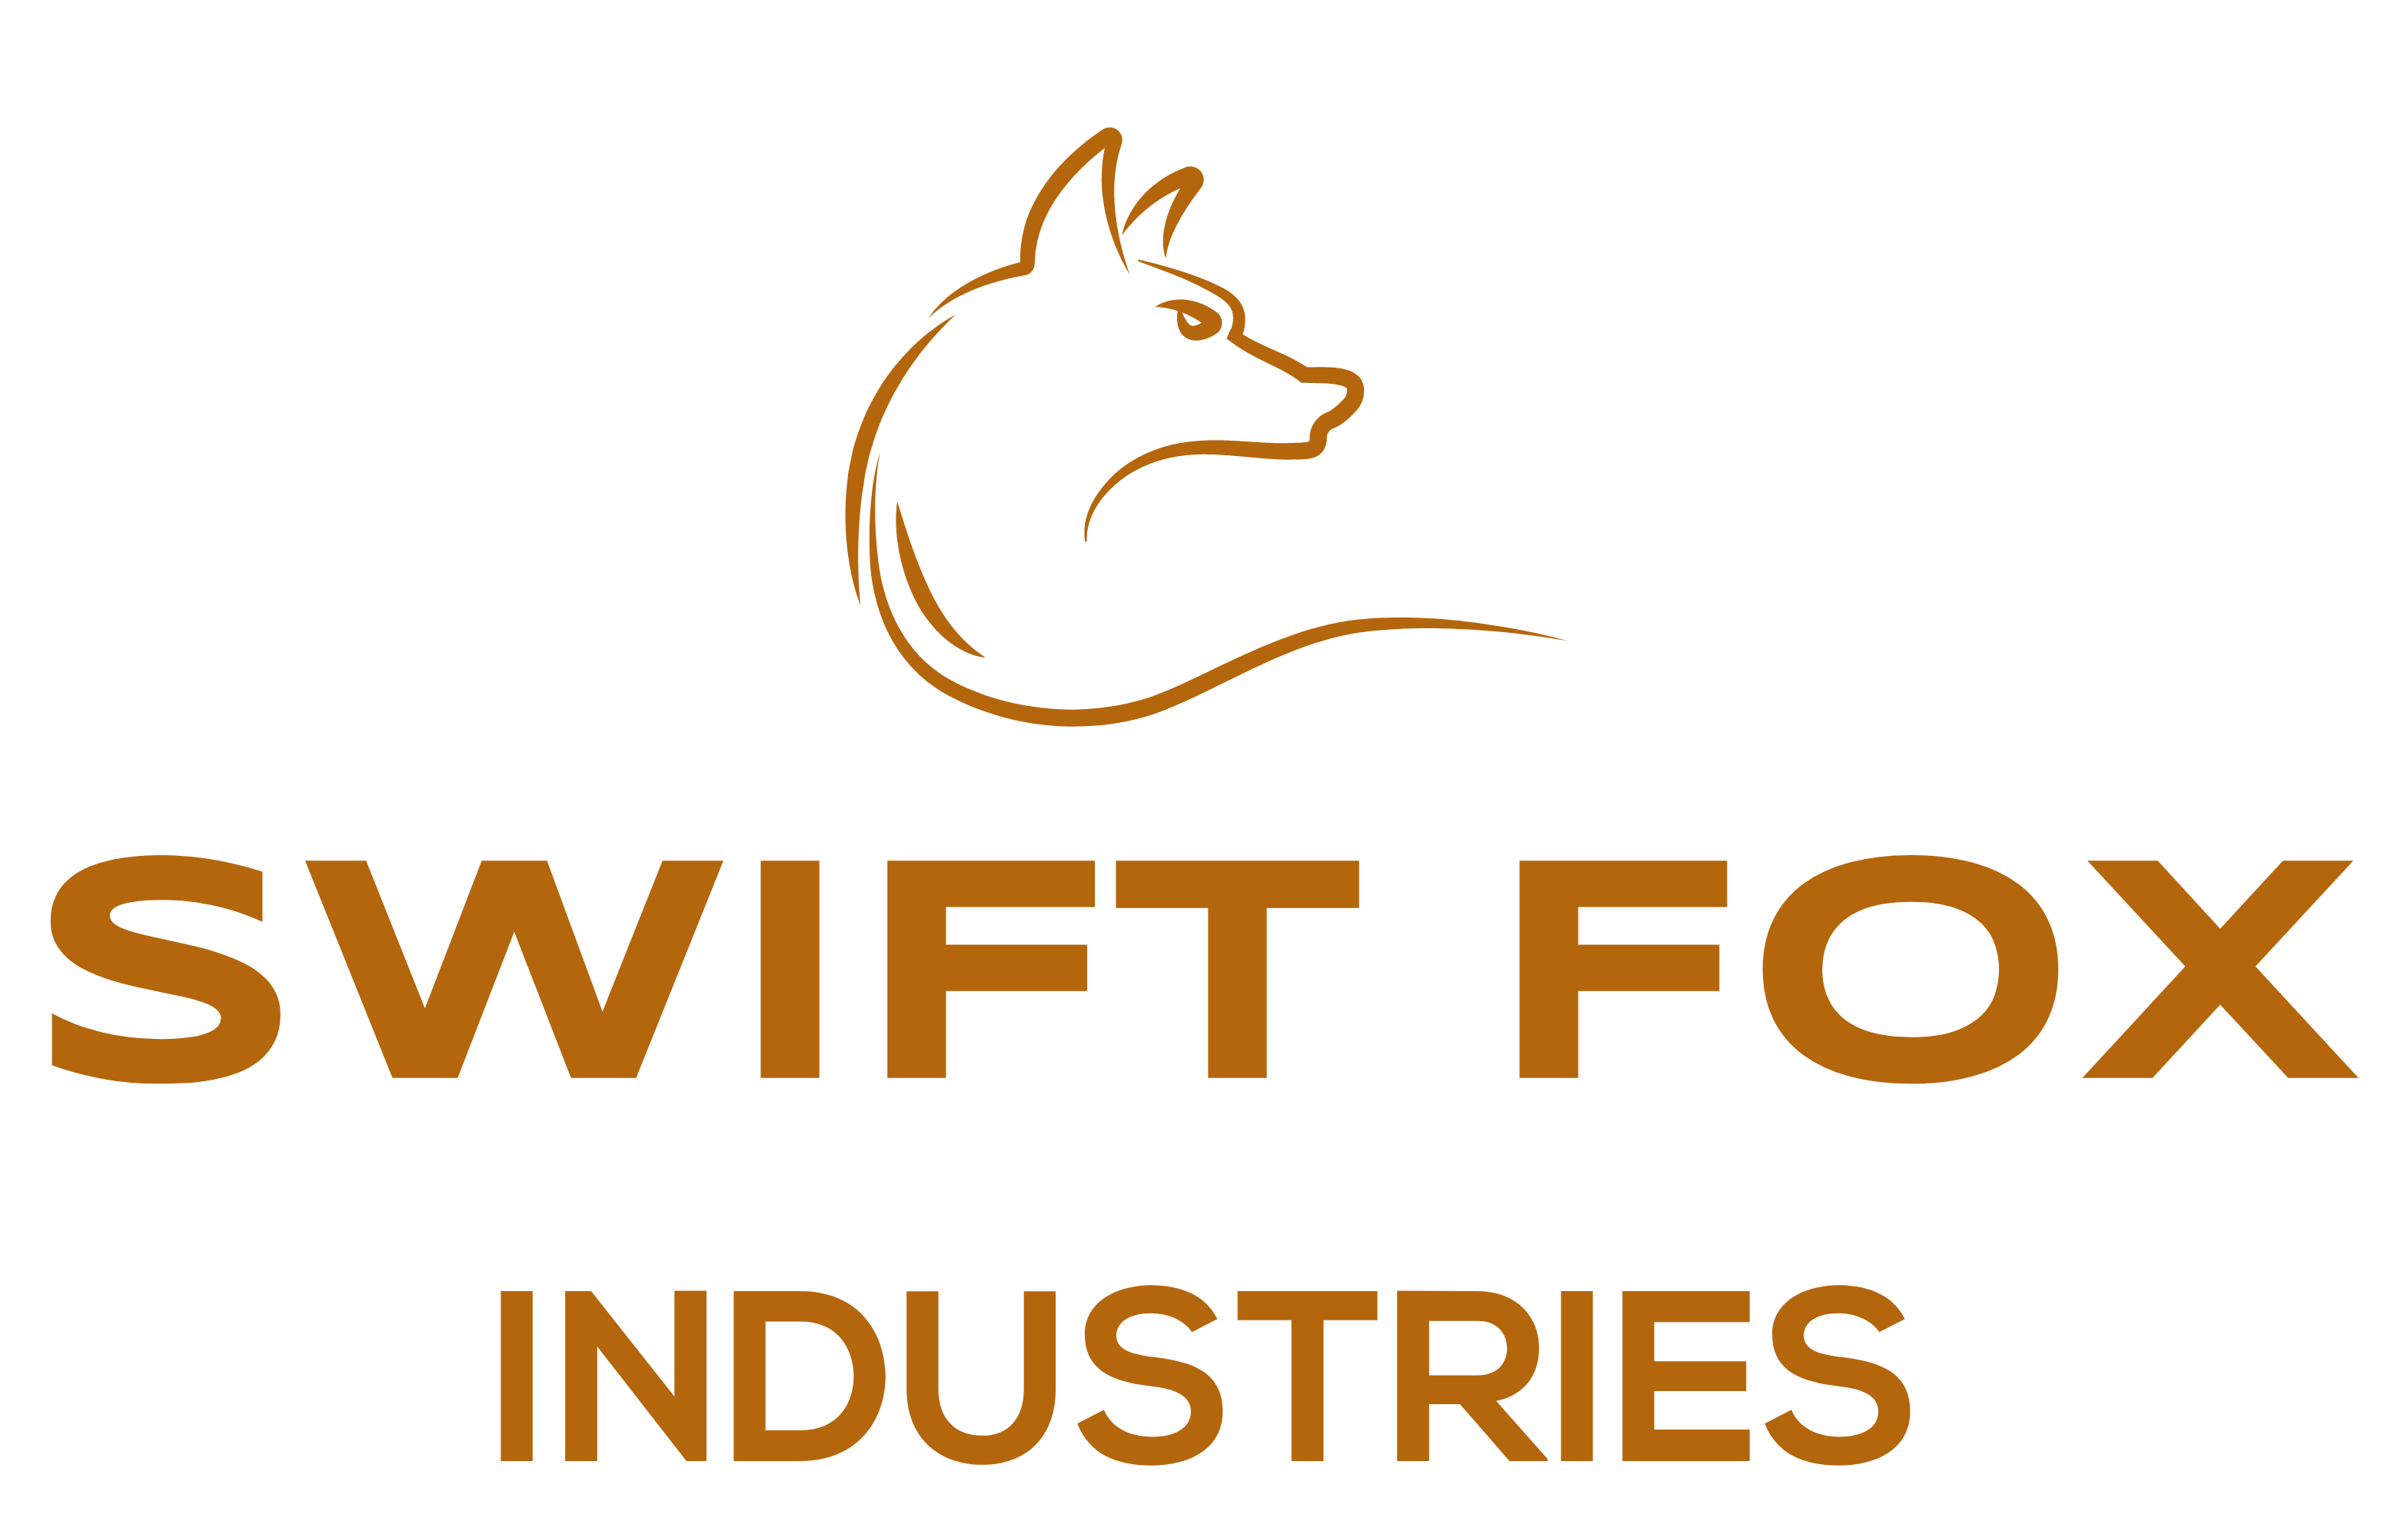 Swift Fox Industries